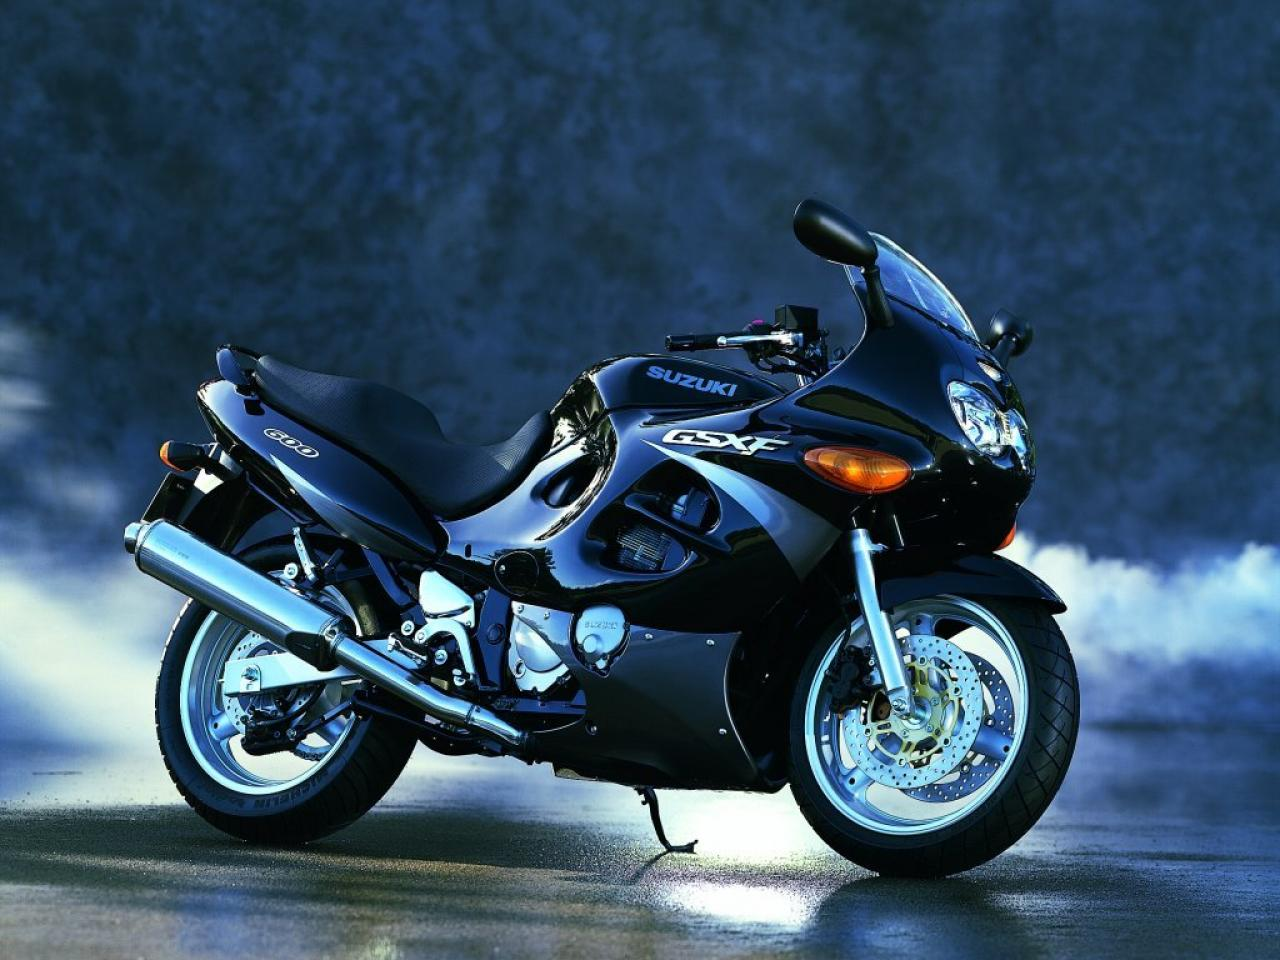 2001 suzuki gsx 600 f katana moto zombdrive com. Black Bedroom Furniture Sets. Home Design Ideas